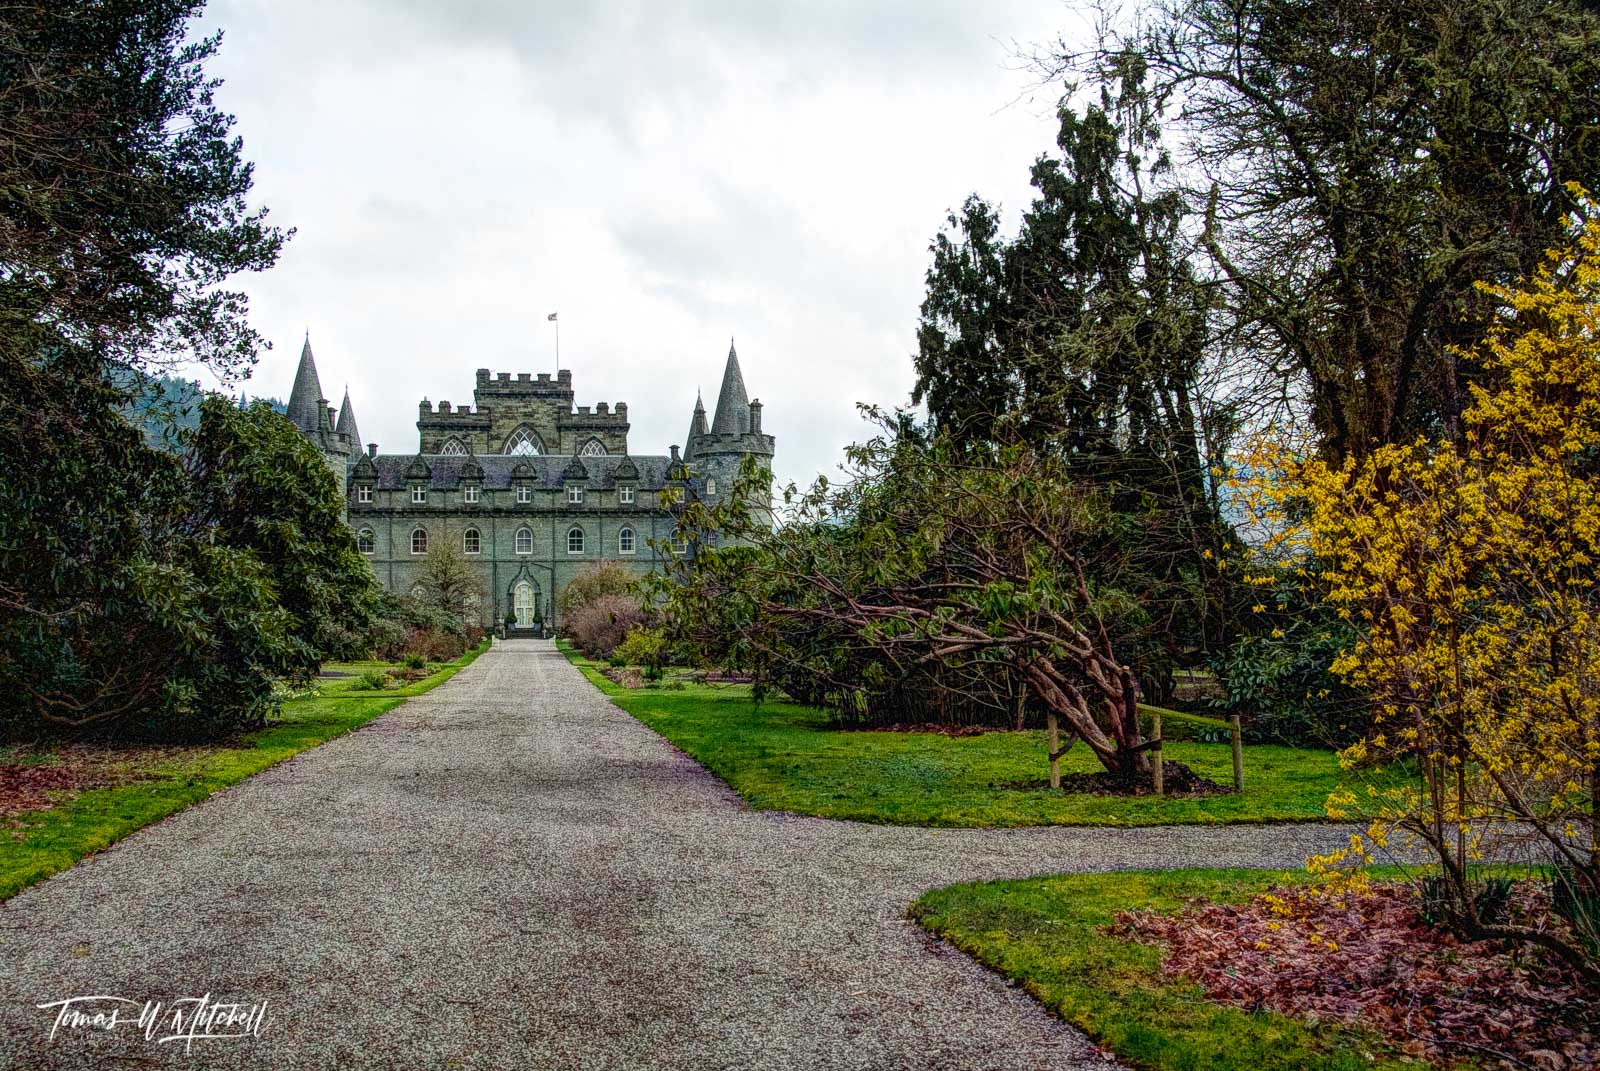 Limited Edition of 50 Museum Grade, Fine Art Prints. Inveraray Castle is the ancestral home of the Duke of Argyll, Chief of the...